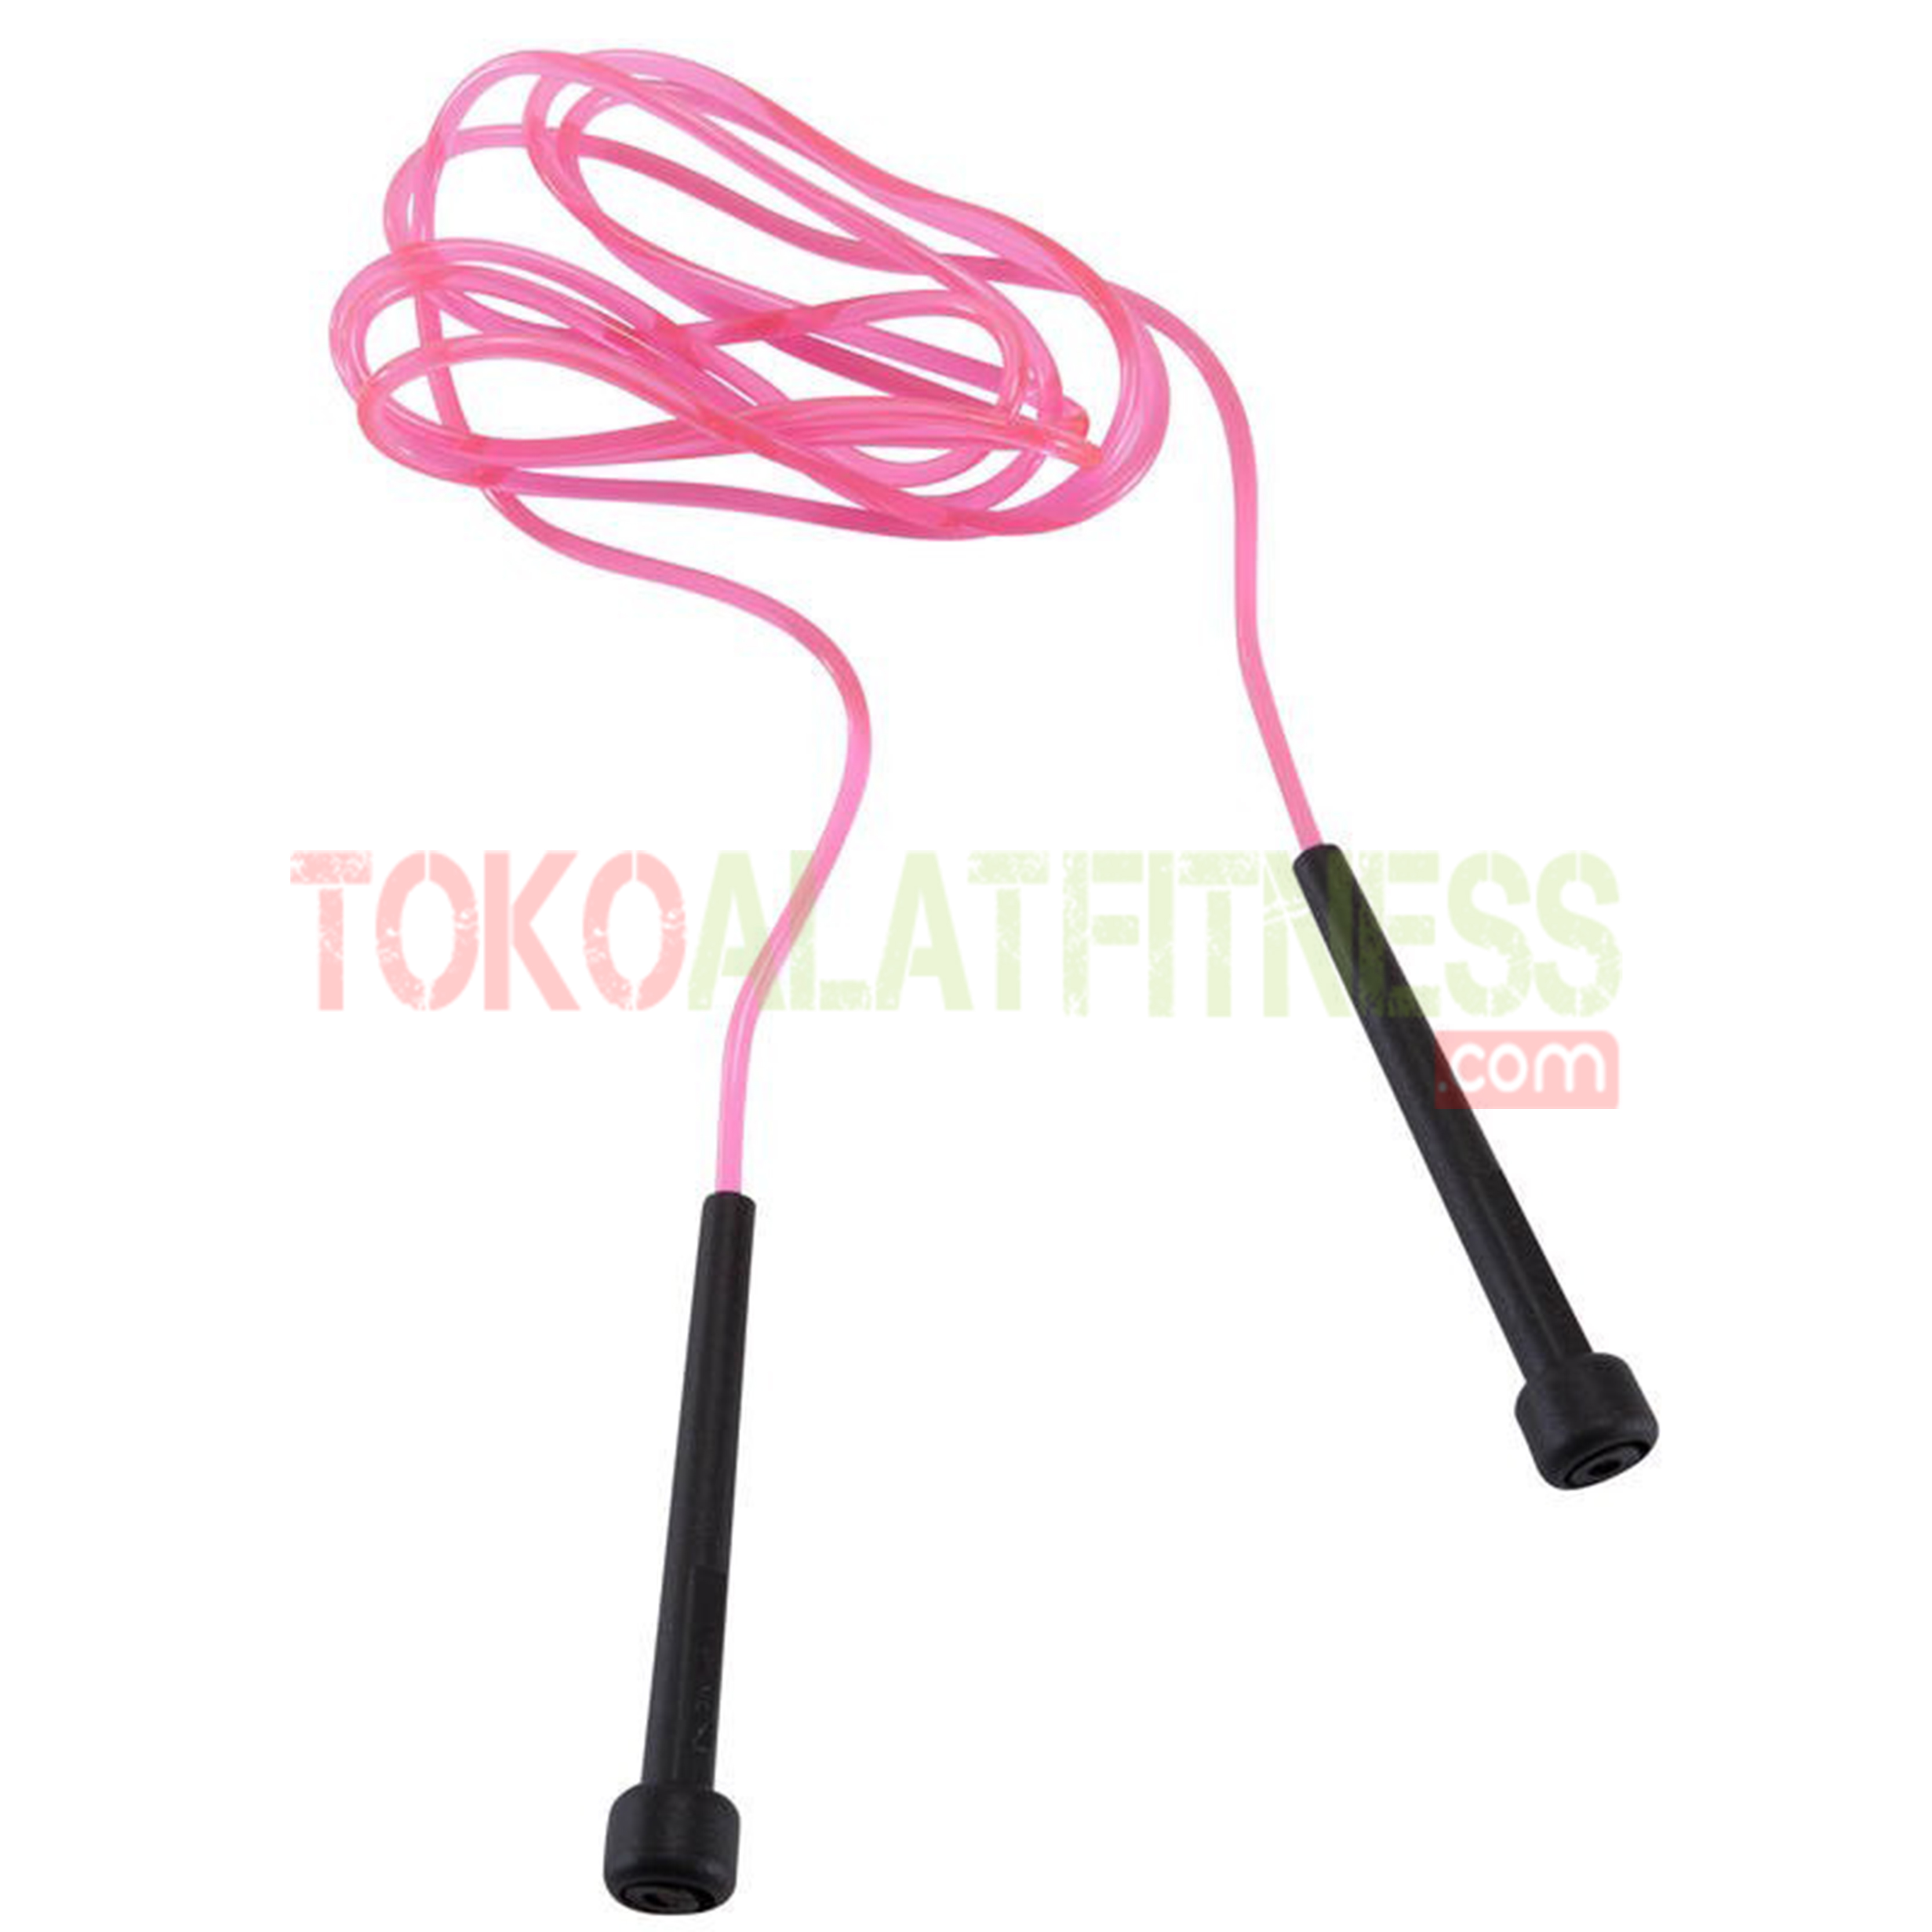 essential kids skipping rope pink wtm - Simple Jump Rope Pink Domyos